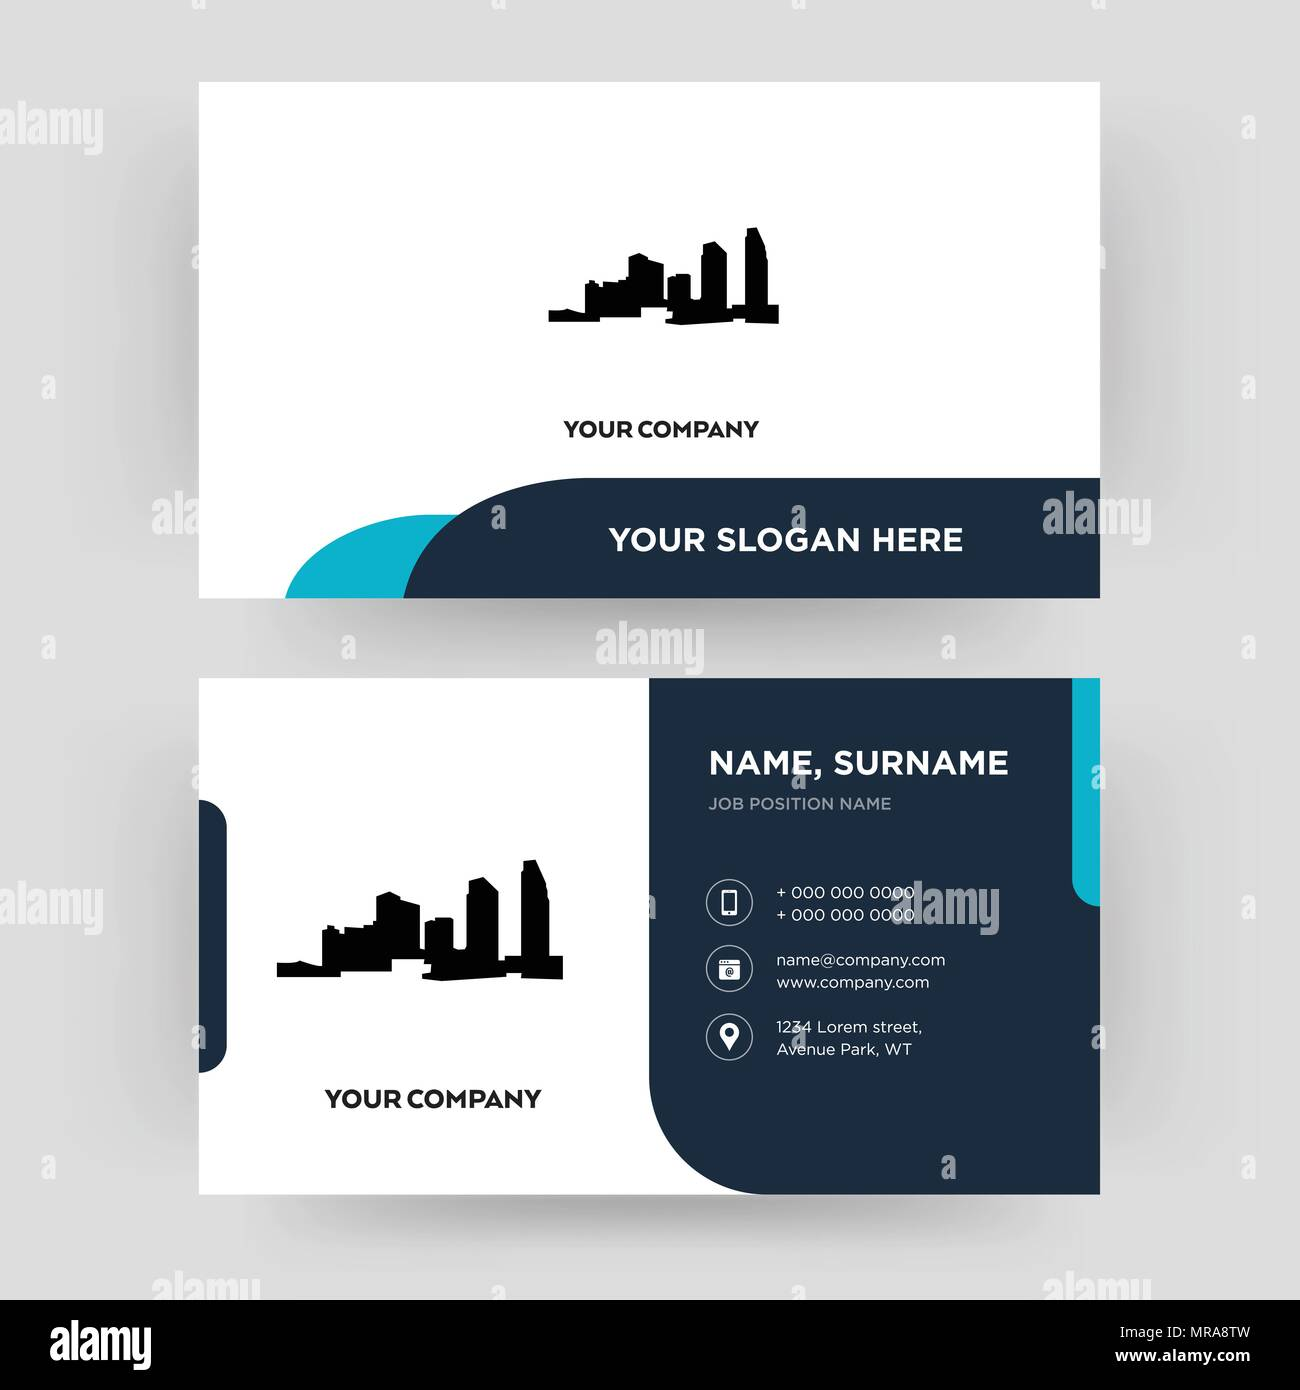 Long island business card design template visiting for your long island business card design template visiting for your company modern creative and clean identity card vector reheart Gallery